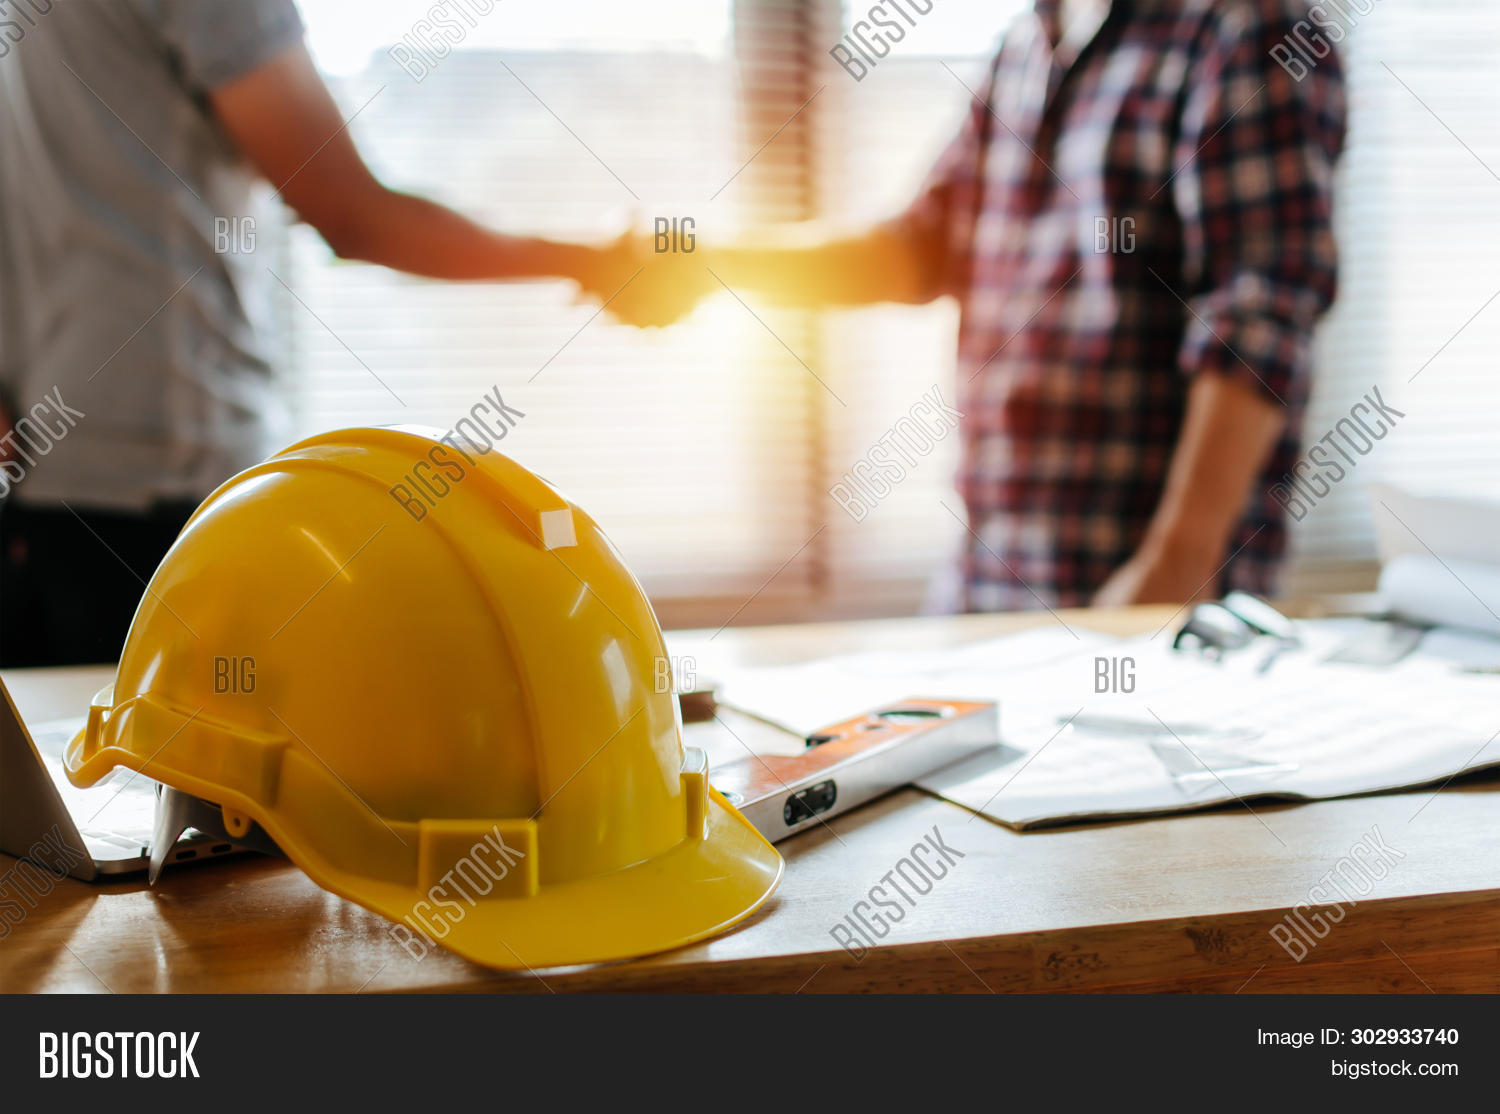 agent,agreement,architect,architecture,blueprint,broker,builder,building,business,casual,civil,construction,contract,contractor,customer,deal,design,engineer,engineering,equipment,estate,foreman,greeting,hand,handshake,helmet,home,house,industrial,industry,manager,meeting,office,partner,partnership,professional,project,property,real,realtor,renovation,safety,sale,shake,team,teamwork,together,tool,worker,yellow